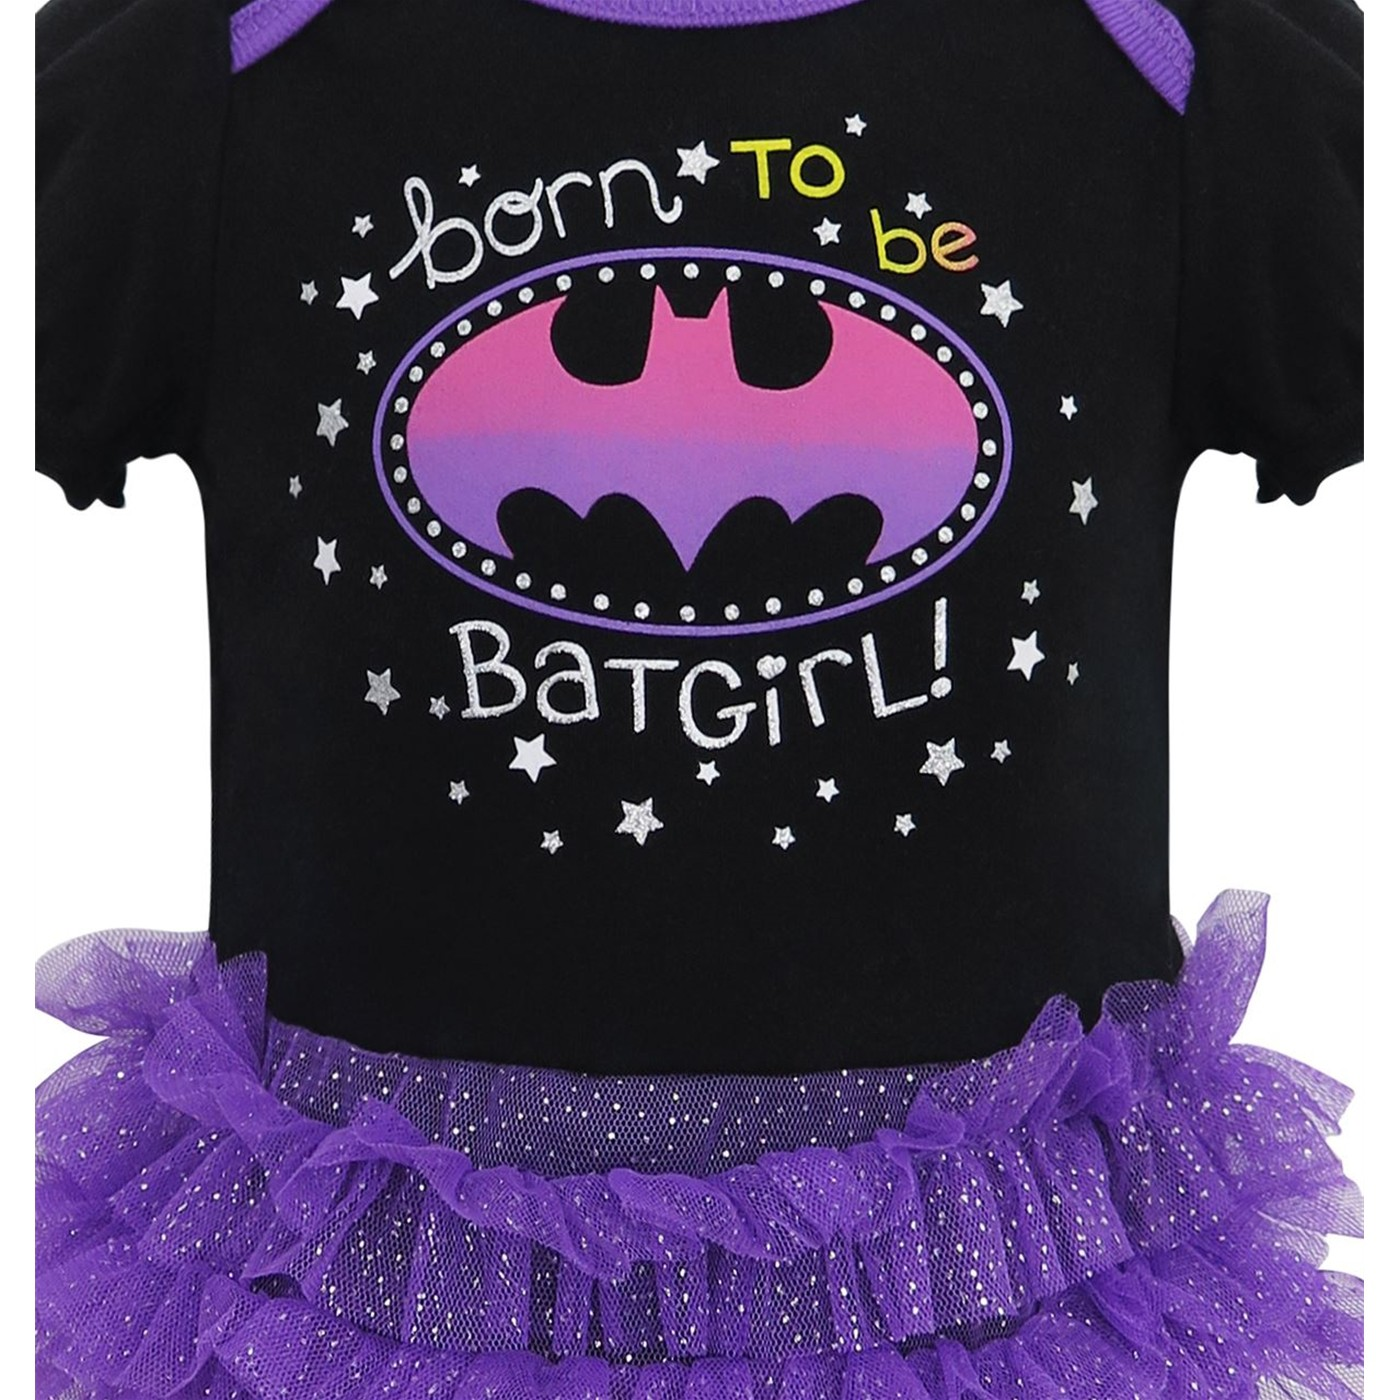 Batgirl Born to Be Snapsuit with Tutu